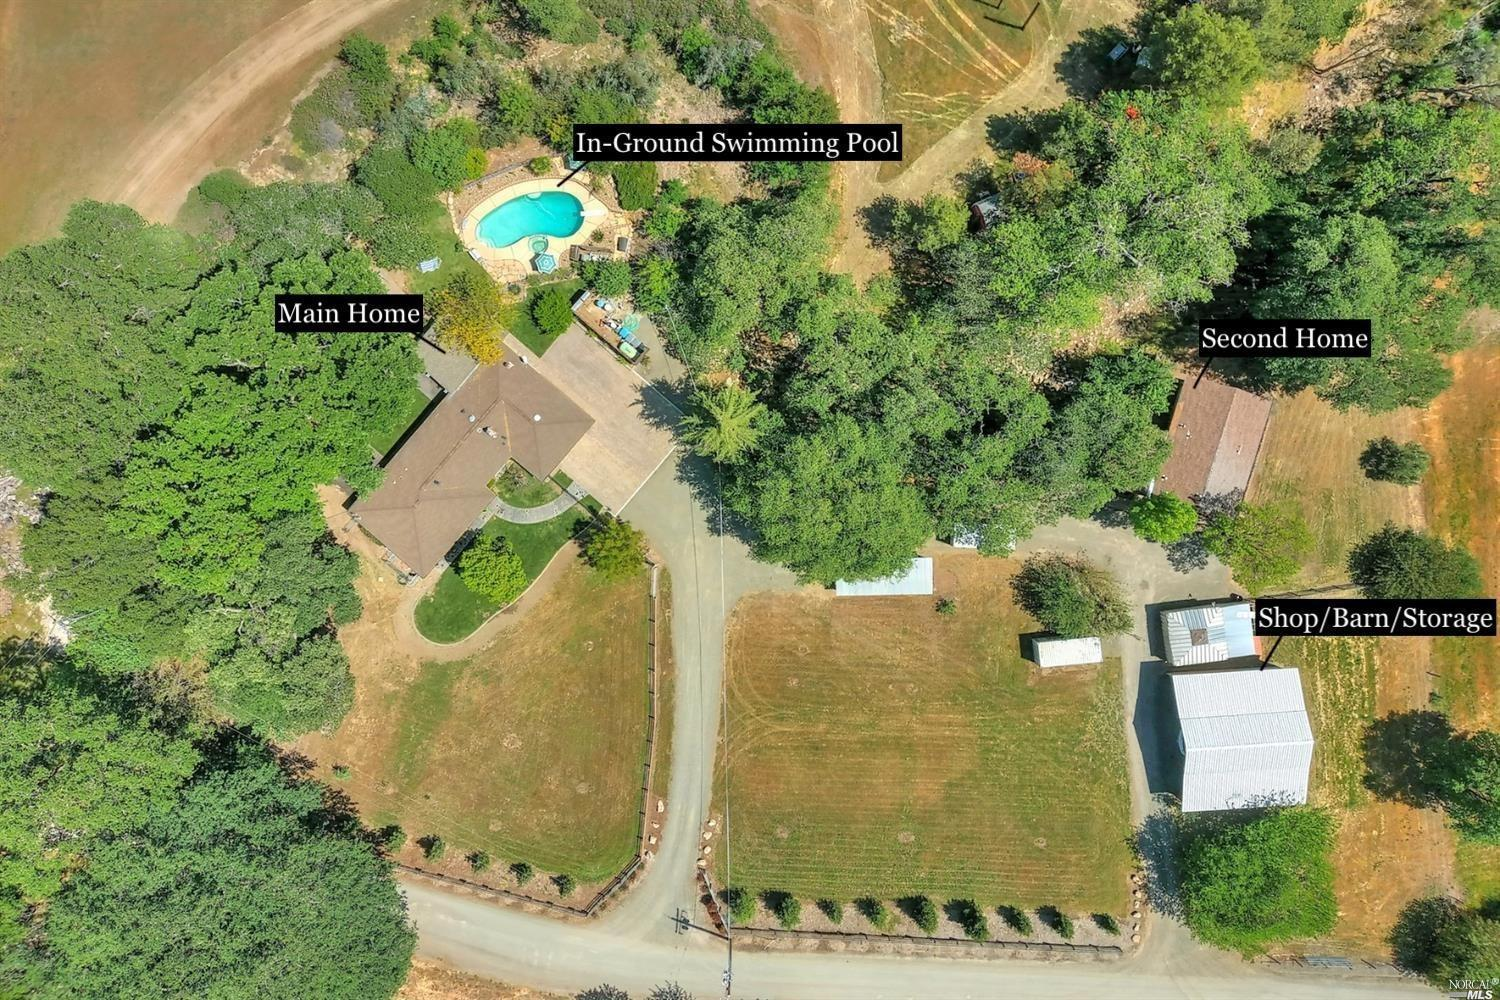 2 Homes On 10 Acres With Large Shop/Barn, Sparkling In-Ground Pool, RV Parking Plus Potential To Subdivide! The Main Home Features 3 Bedrooms, 2 Bathrooms With Updates Throughout Including A Beautiful Kitchen W/ Custom Hickory & Black Walnut Cabinetry, Copper Sink, Stainless Steel Appliances, Granite Countertops, Breakfast Counter, Updated Bathrooms W/ Tile Floors, Tile Surround Shower & Rain Showerheads, Recessed Lighting, Ceiling Fans, Updated Windows, Wood Burning Stove W/ Slate Surround, Travertine Entry & Recessed Lighting. 2nd Home Features 3 Bedrooms, 1 Bathroom, Granite Countertops & Separate Driveway Entrance. Property Highlights Include Paver Driveway, Expansive Stamped Concrete In Front & Backyard, In-Ground Swimming Pool W/ Divi